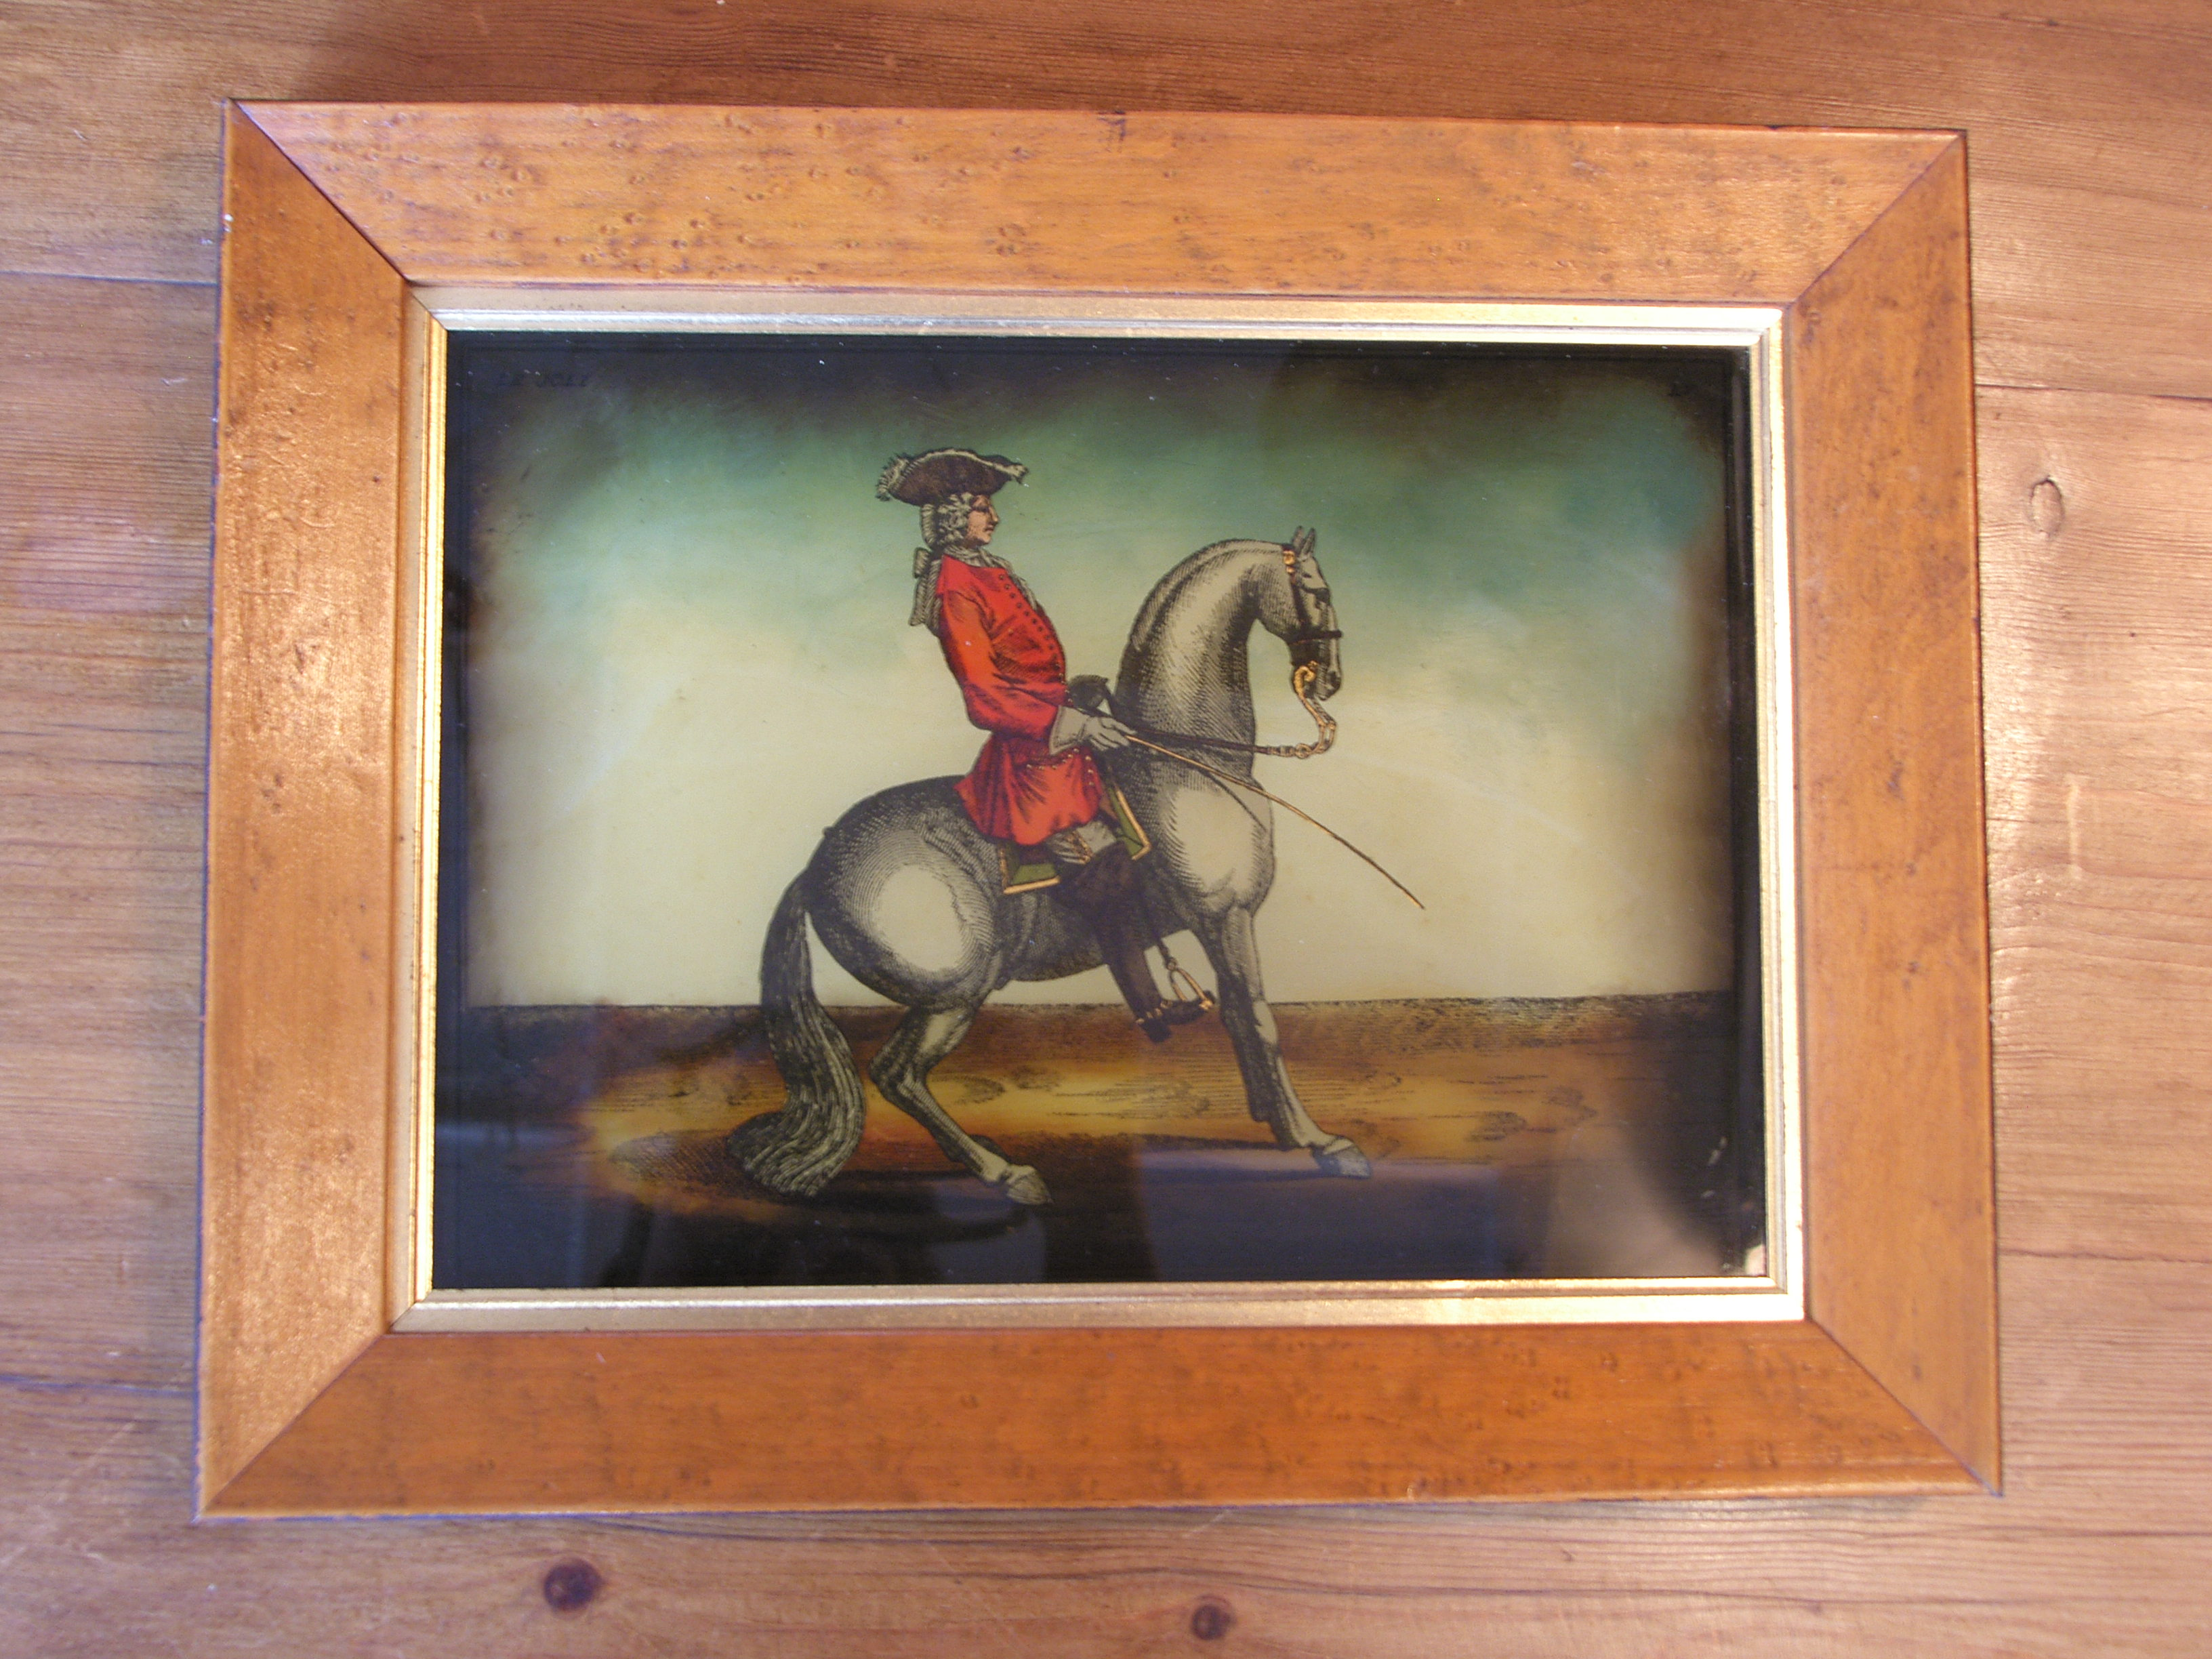 Set of 4 Early 19th Century Hand Coloured Glass Mezzotint Prints ...